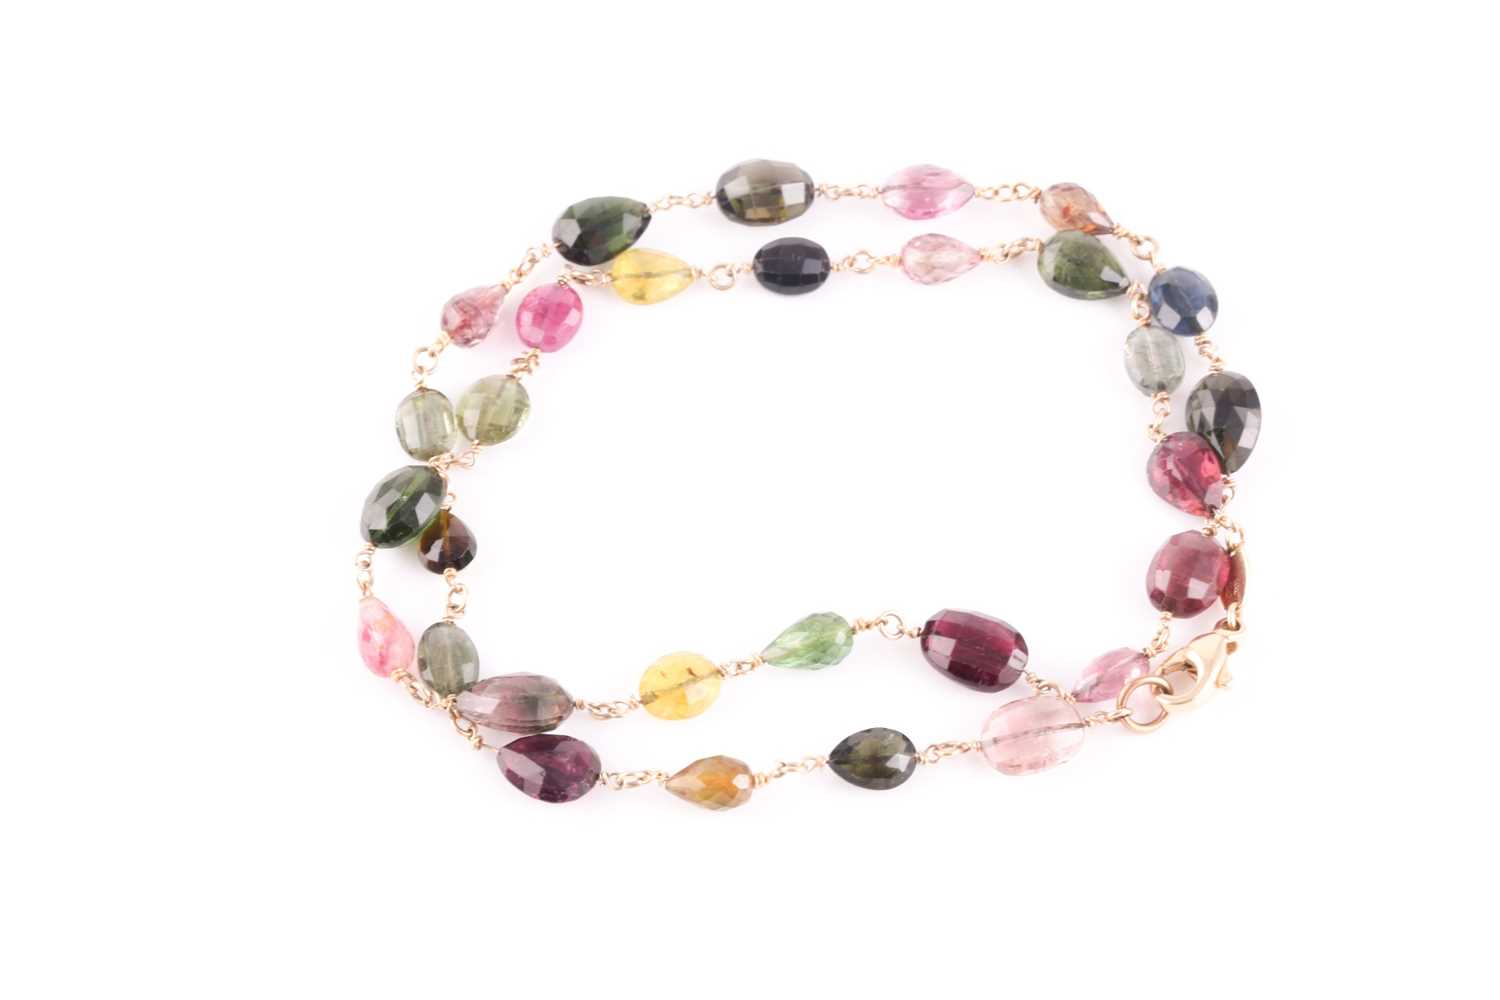 A 14ct yellow gold and varicoloured tourmaline necklace, comprised of briollete-cut pear, oval, - Image 3 of 4